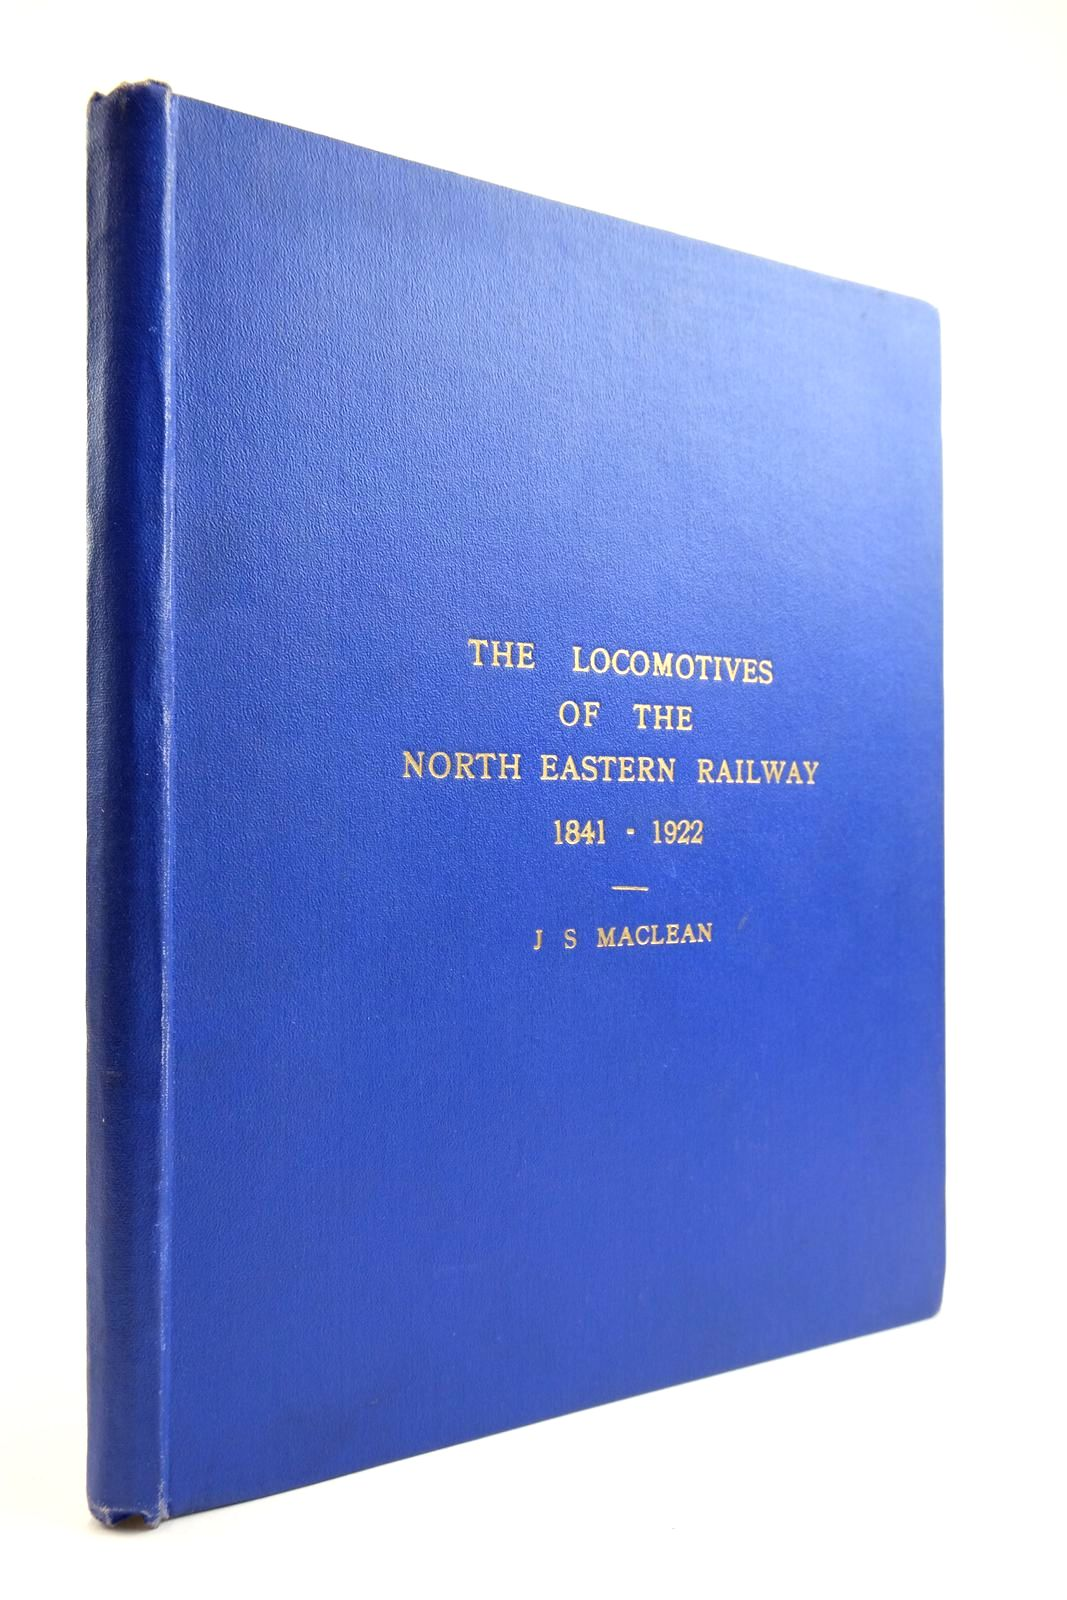 Photo of THE LOCOMOTIVES OF THE NORTH EASTERN RAILWAY 1841 - 1922- Stock Number: 2134060